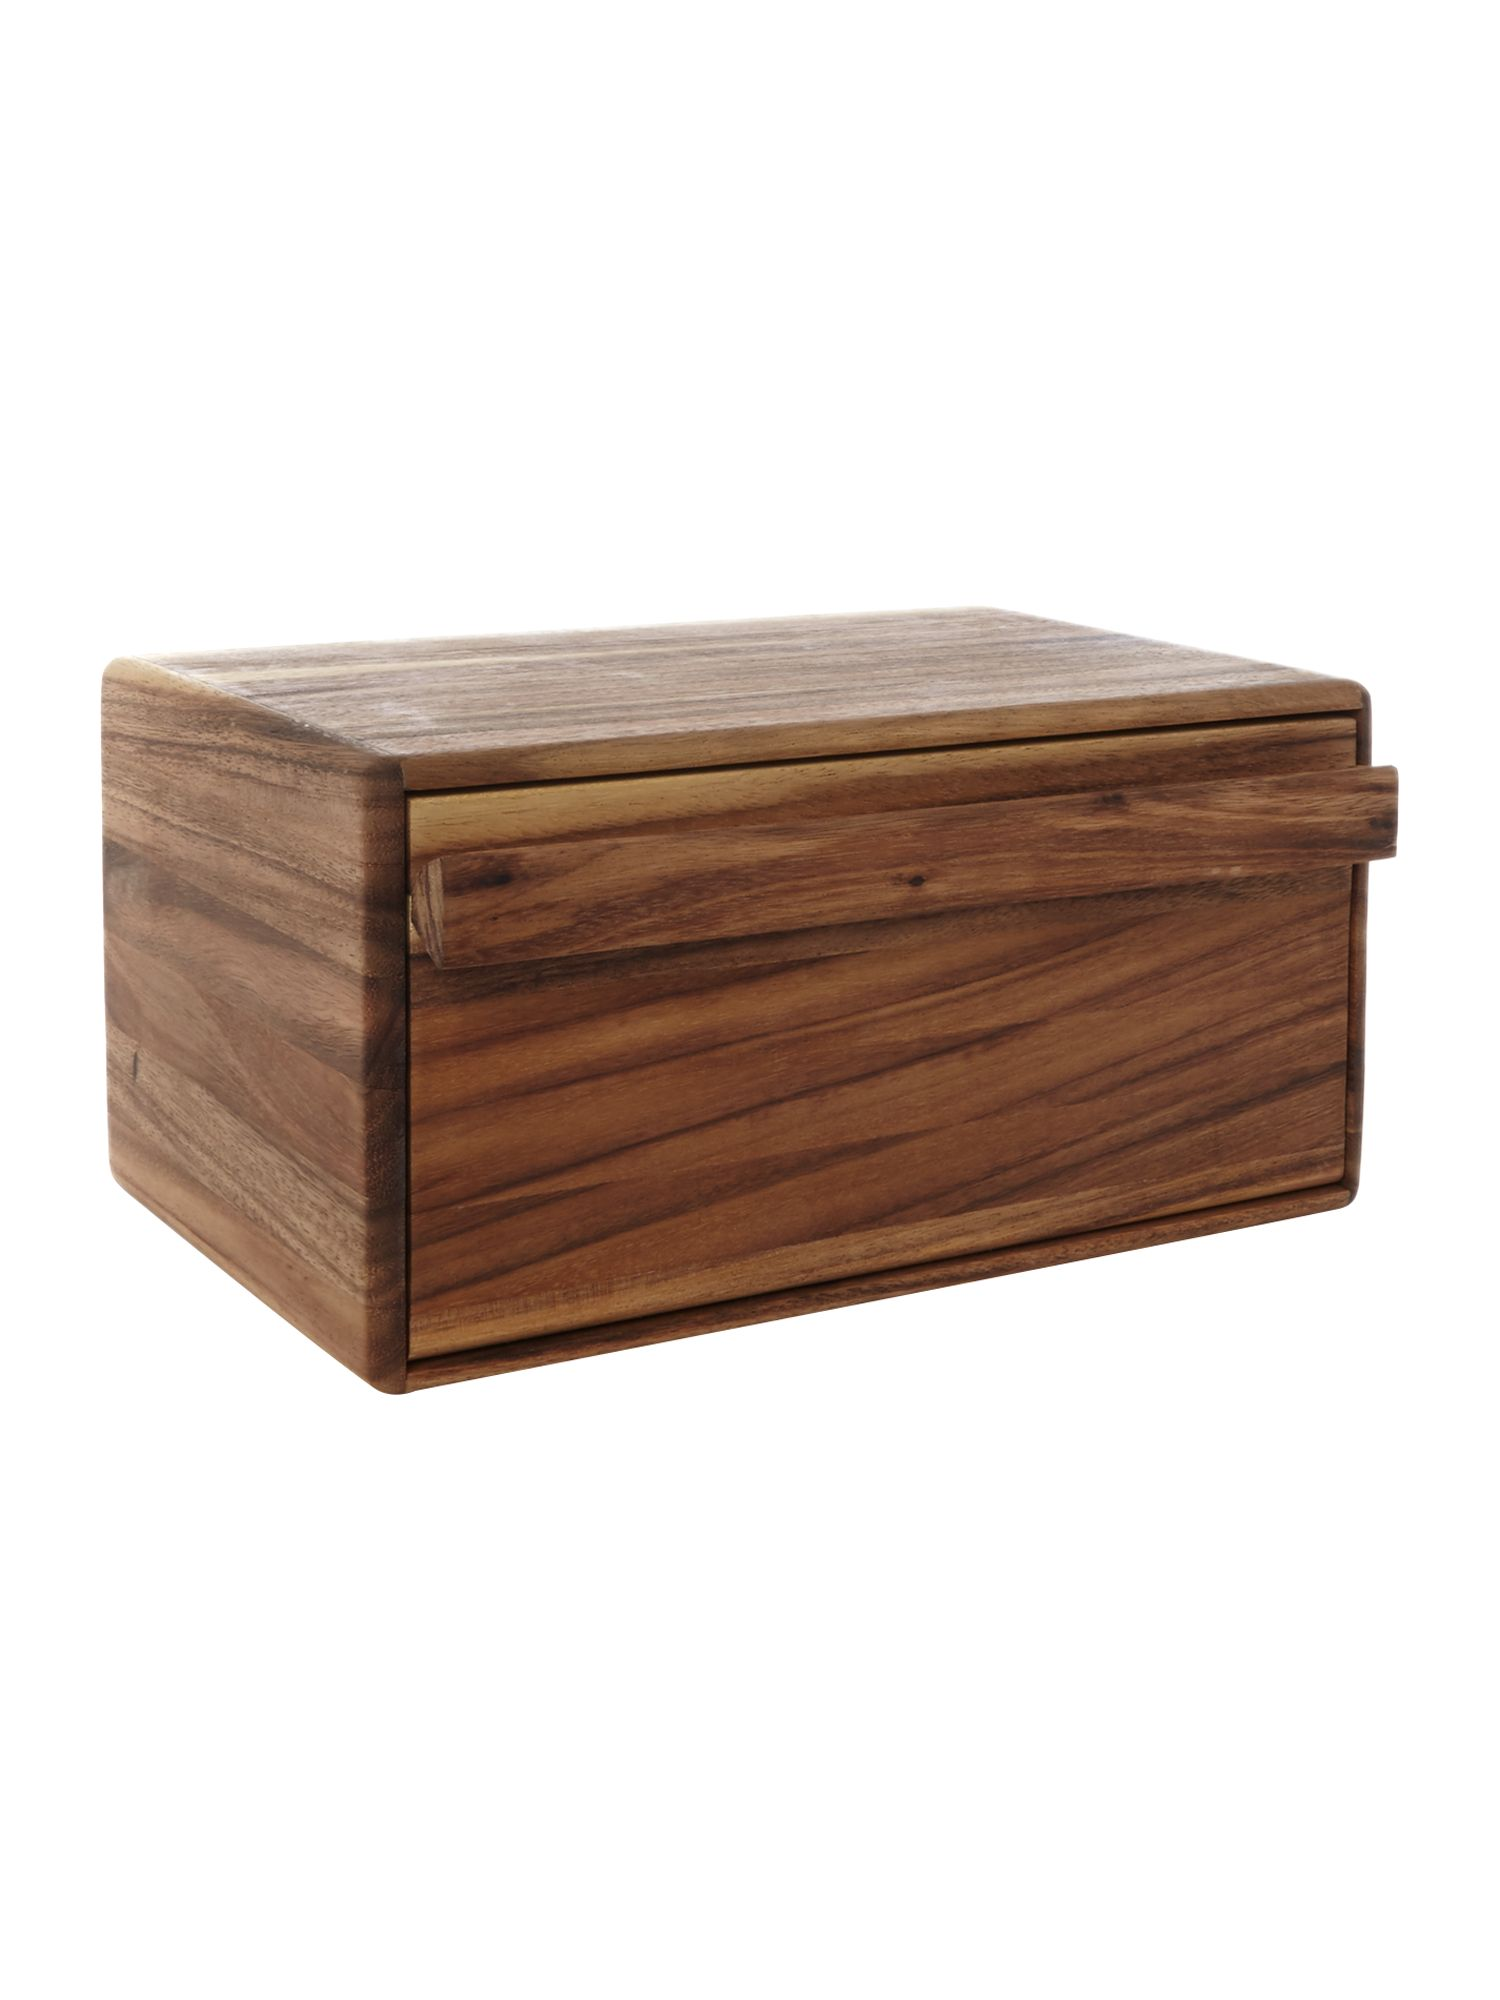 Linea Drop front wooden bread bin